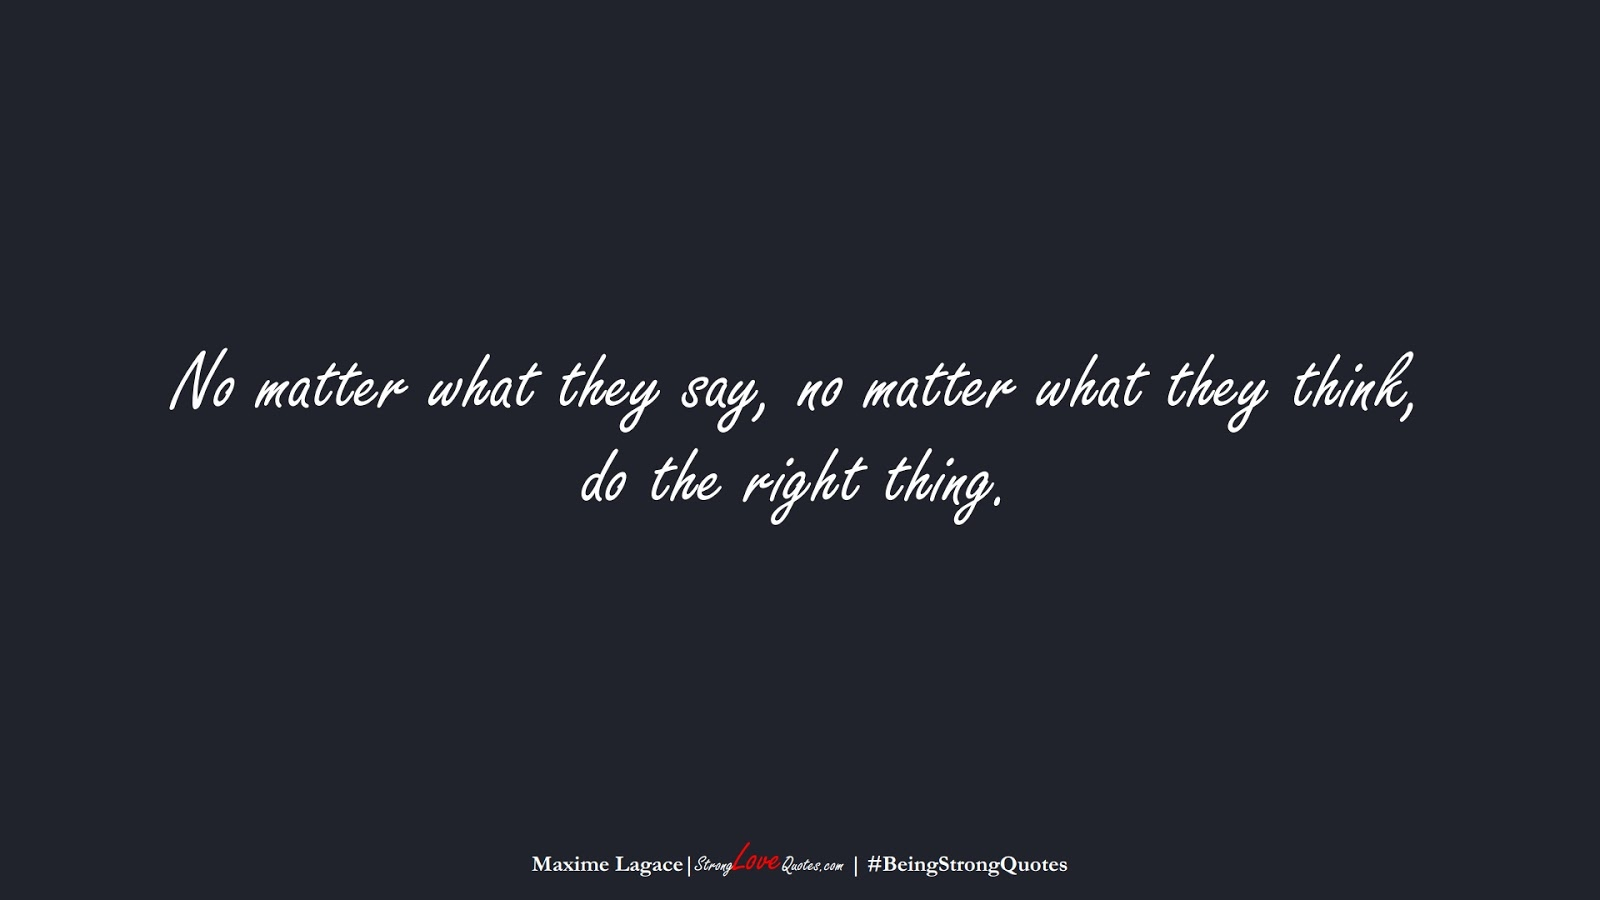 No matter what they say, no matter what they think, do the right thing. (Maxime Lagace);  #BeingStrongQuotes